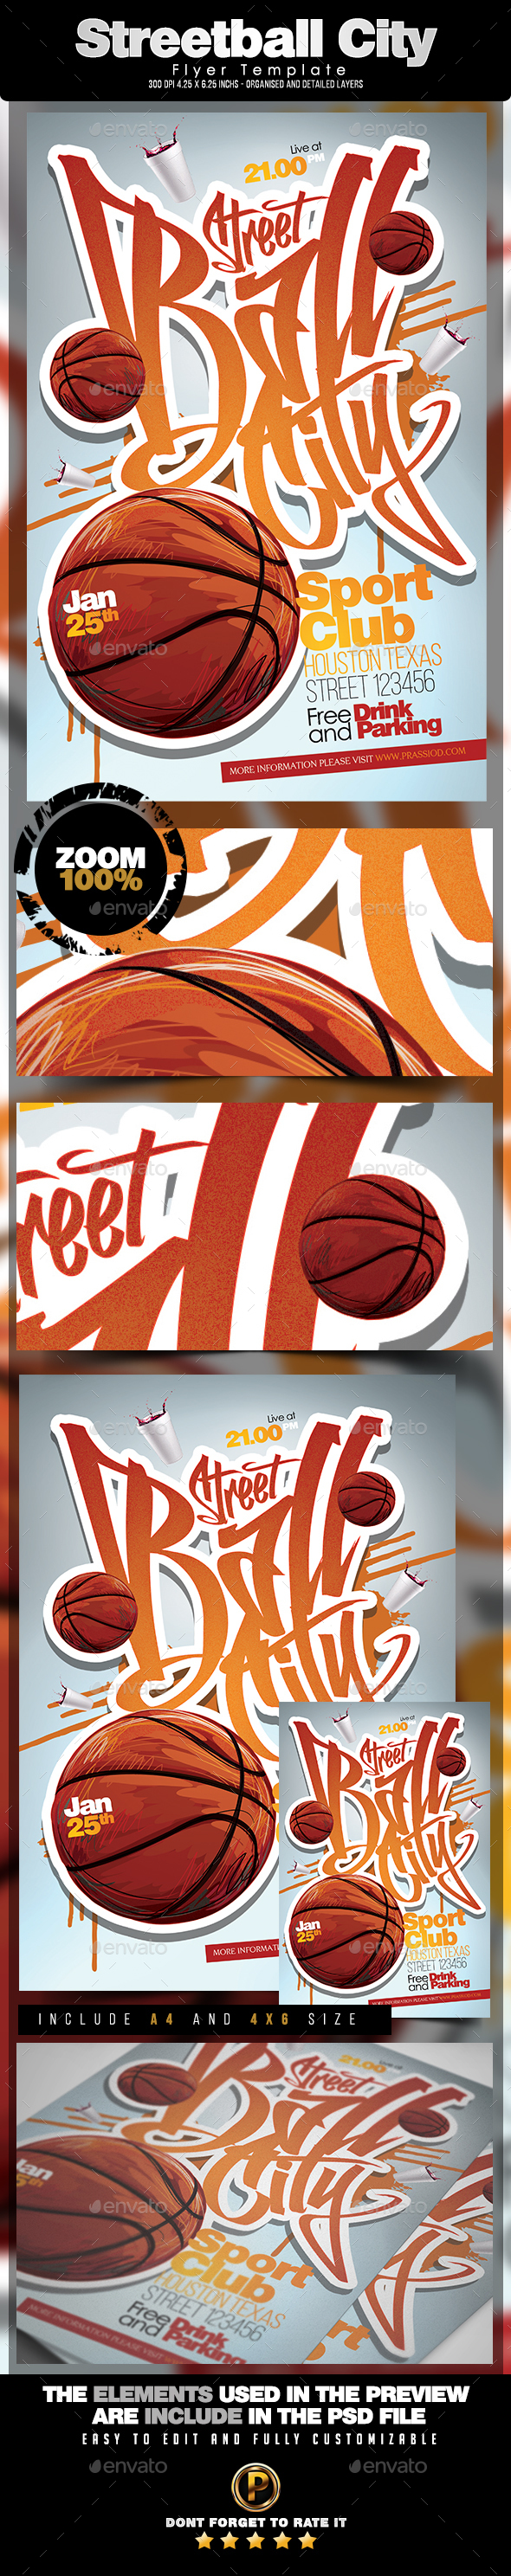 Streetball City Flyer Template - Sports Events